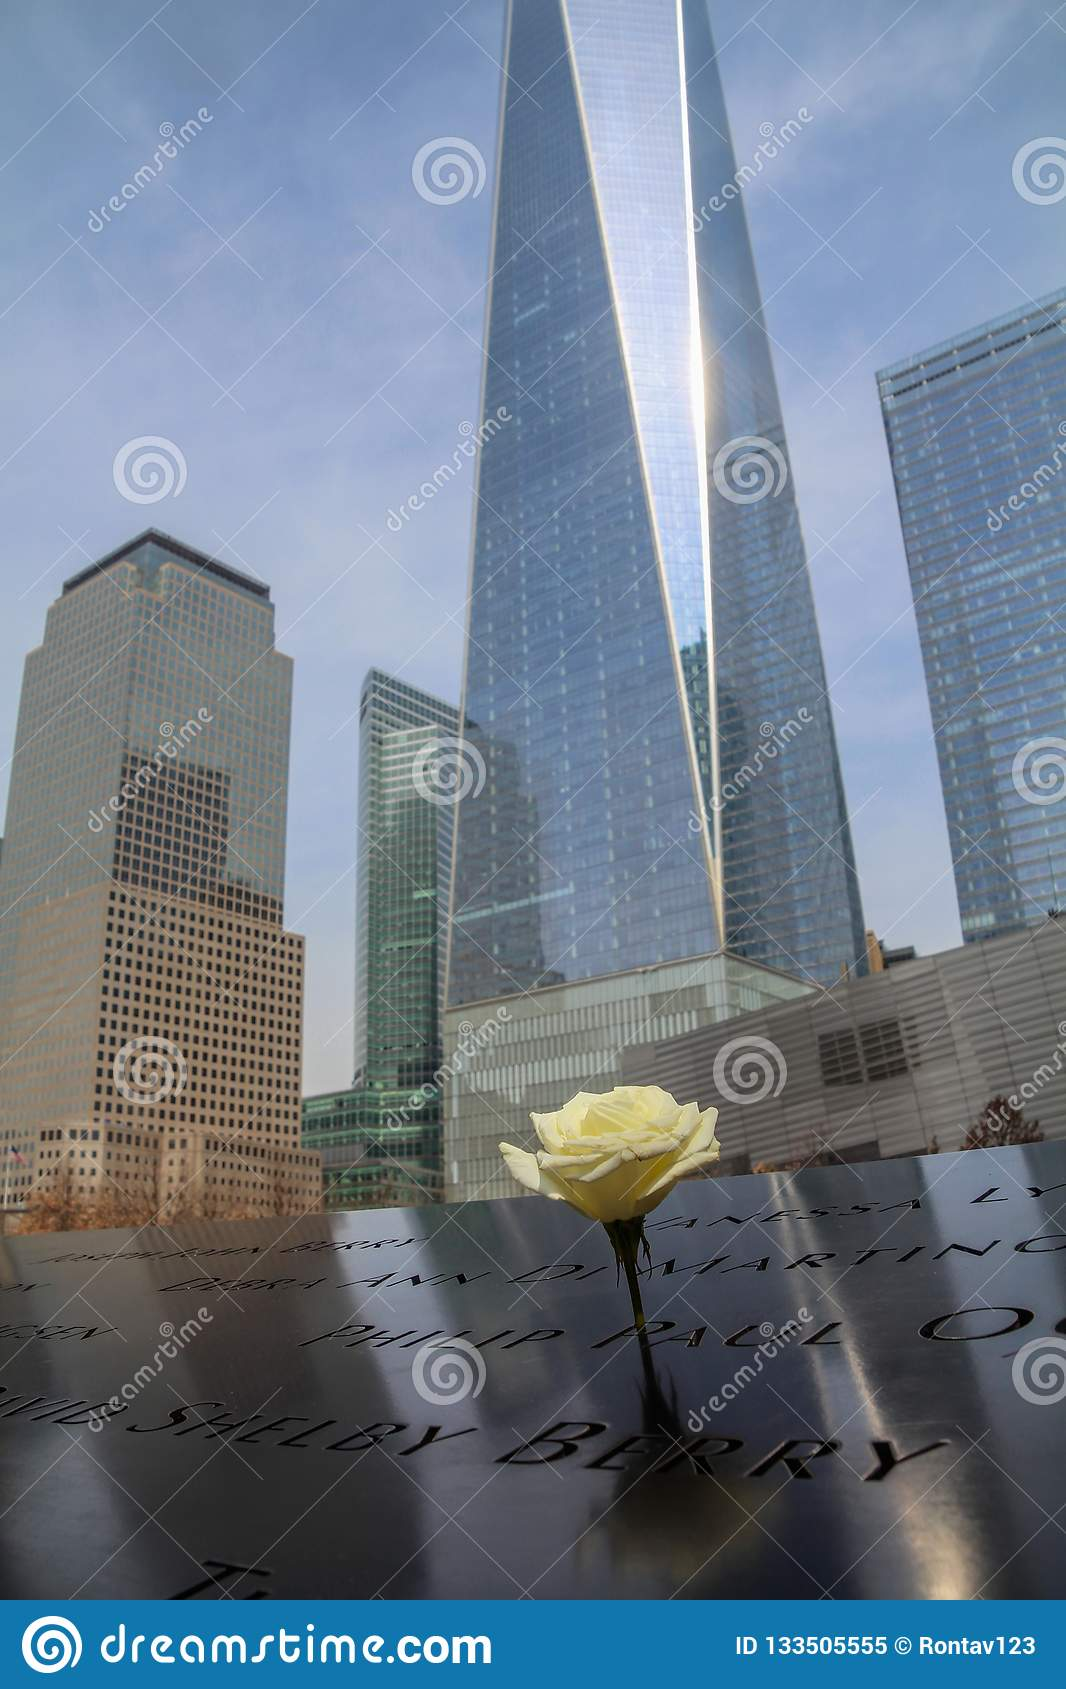 New York City, USA - March 16, 2016: Freedom Tower , One World Trade Center and The September 11 Memorial Pool